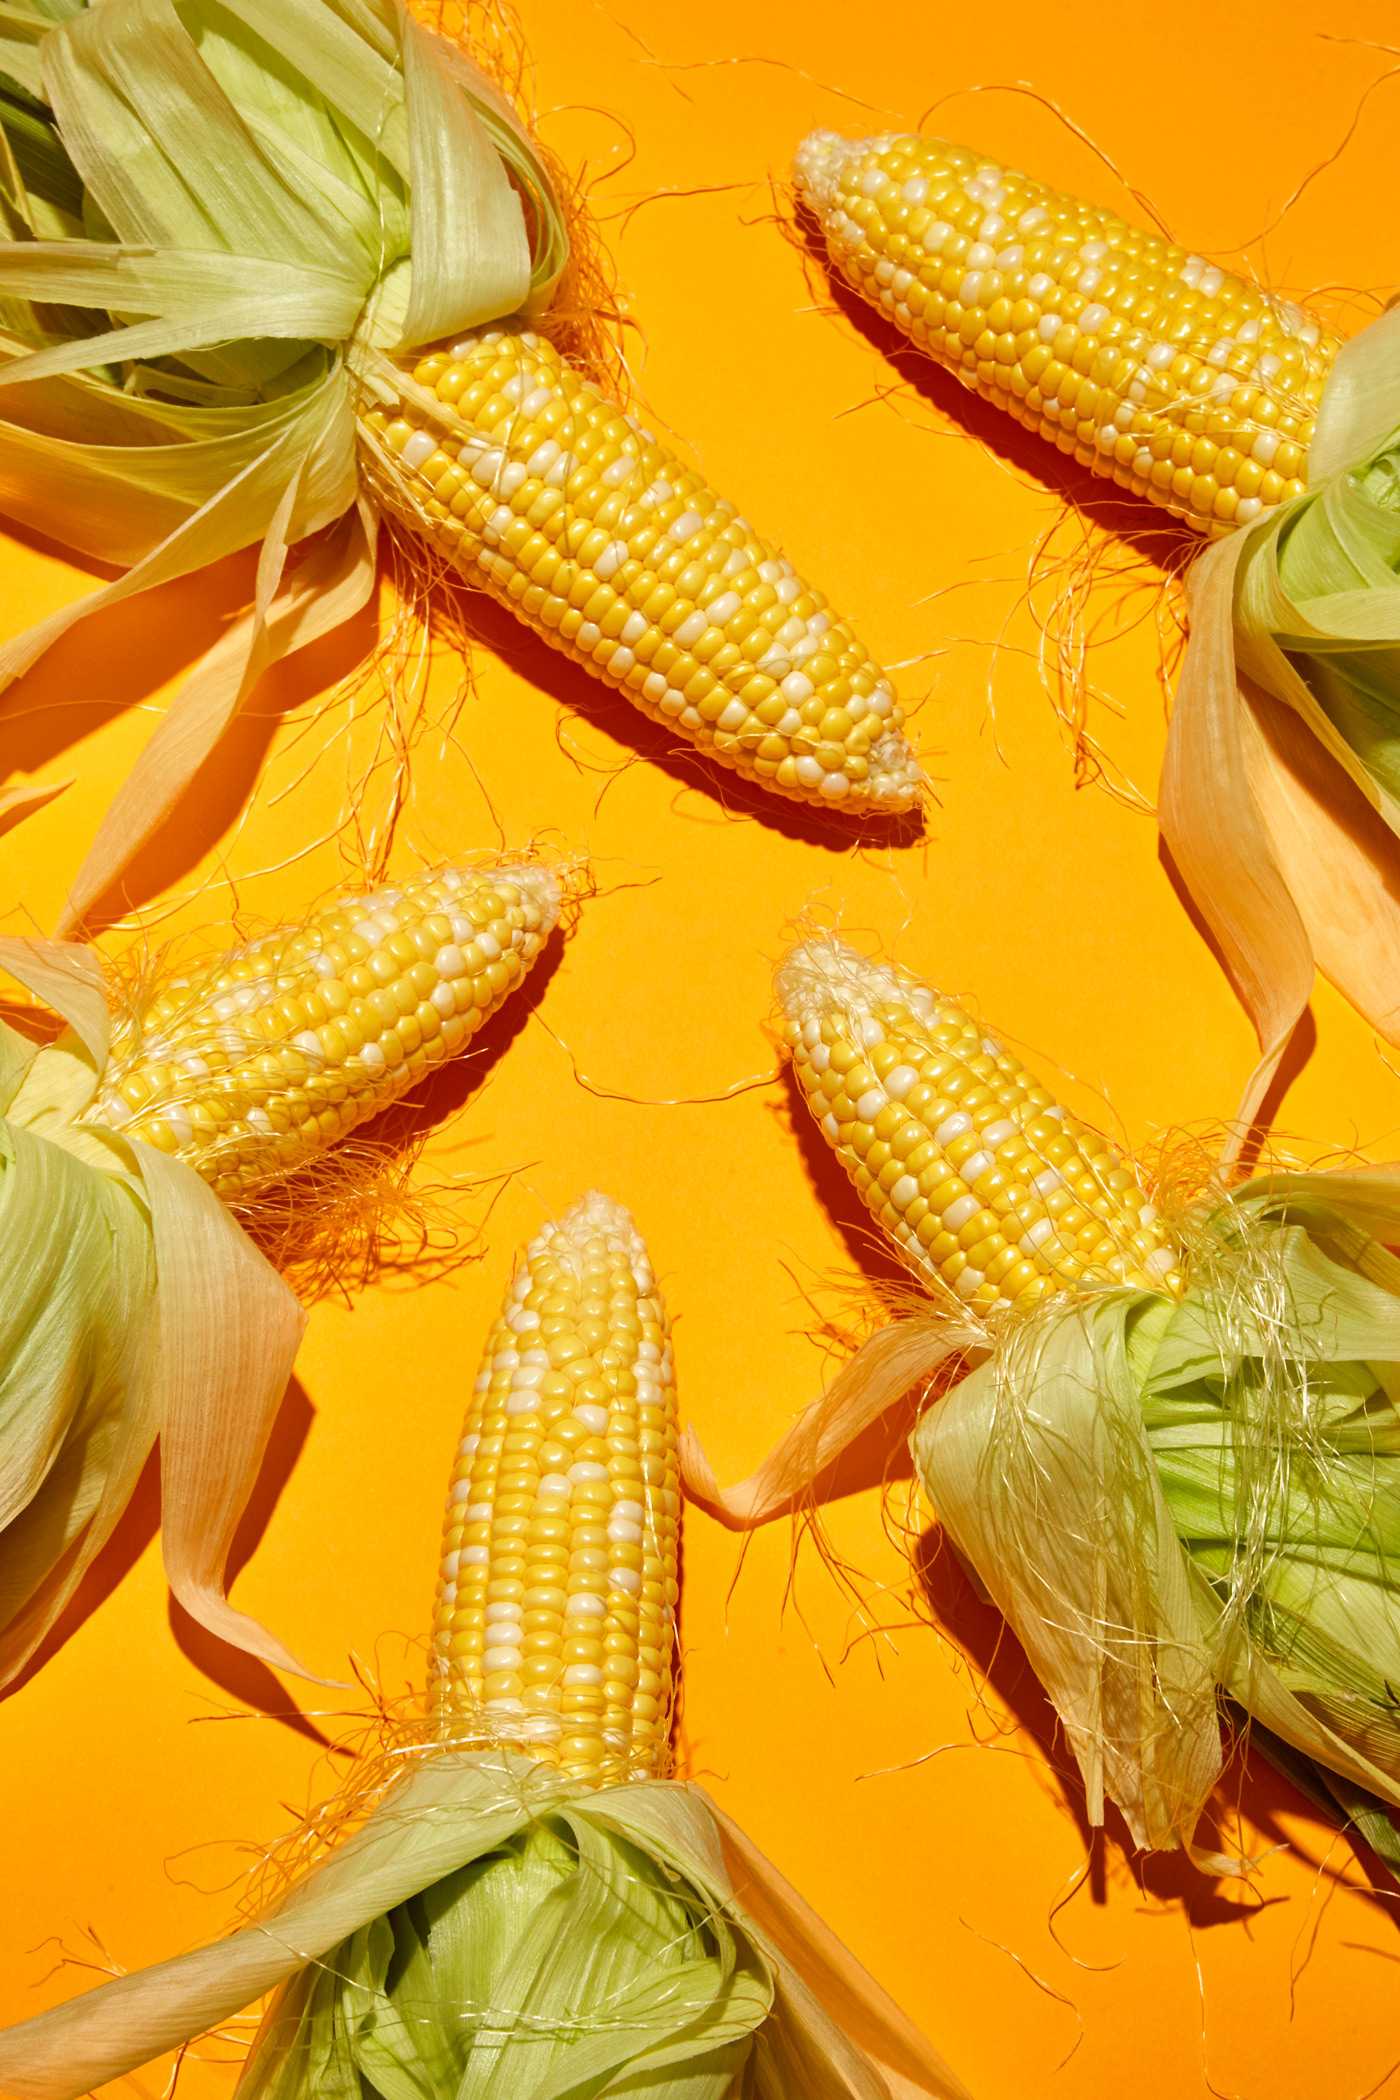 healthiest foods, health food, diet, nutrition, time.com stock, corn, non-gmo